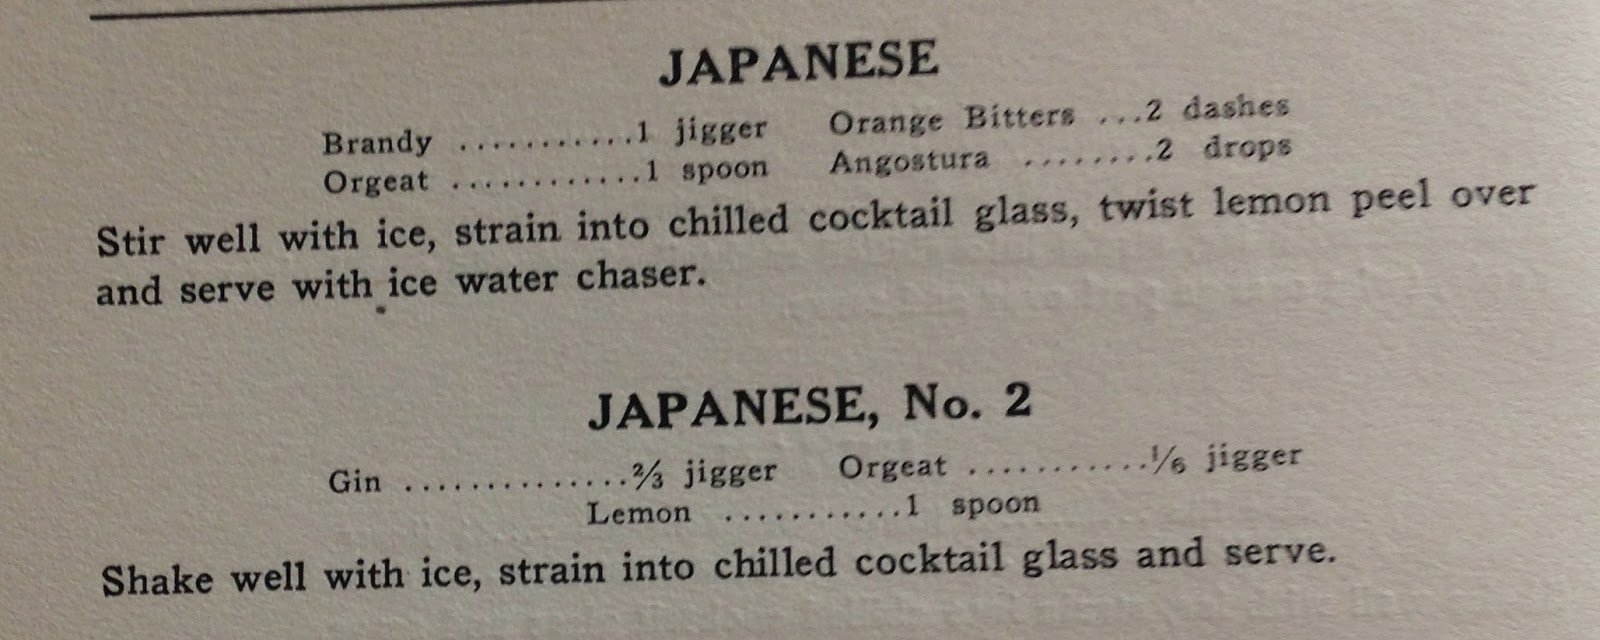 """1934 - From """"Gordon's Cocktail and Food Recipes"""" by Harry Jerro..."""